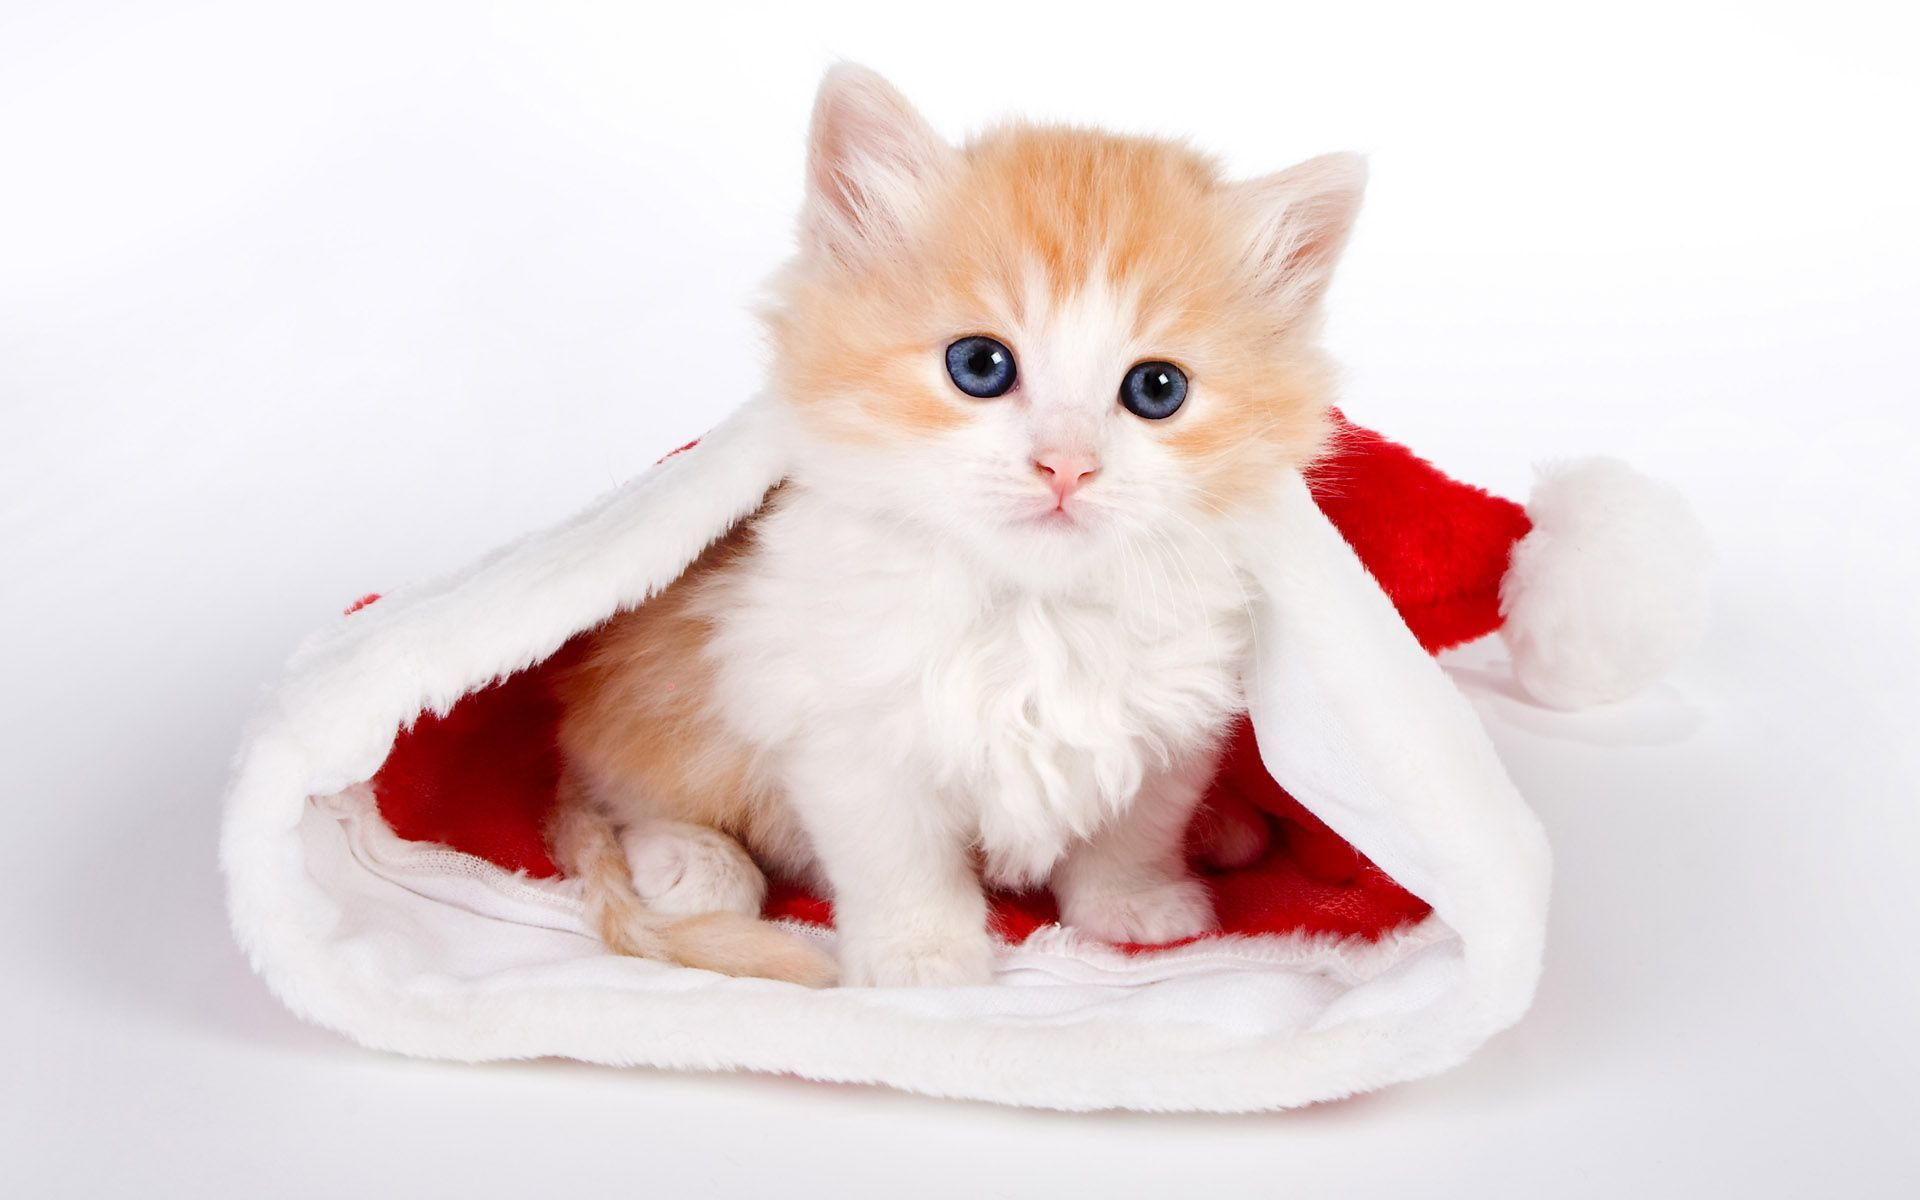 all cat wallpapers wallpapers free download cute cat wallpaper (1